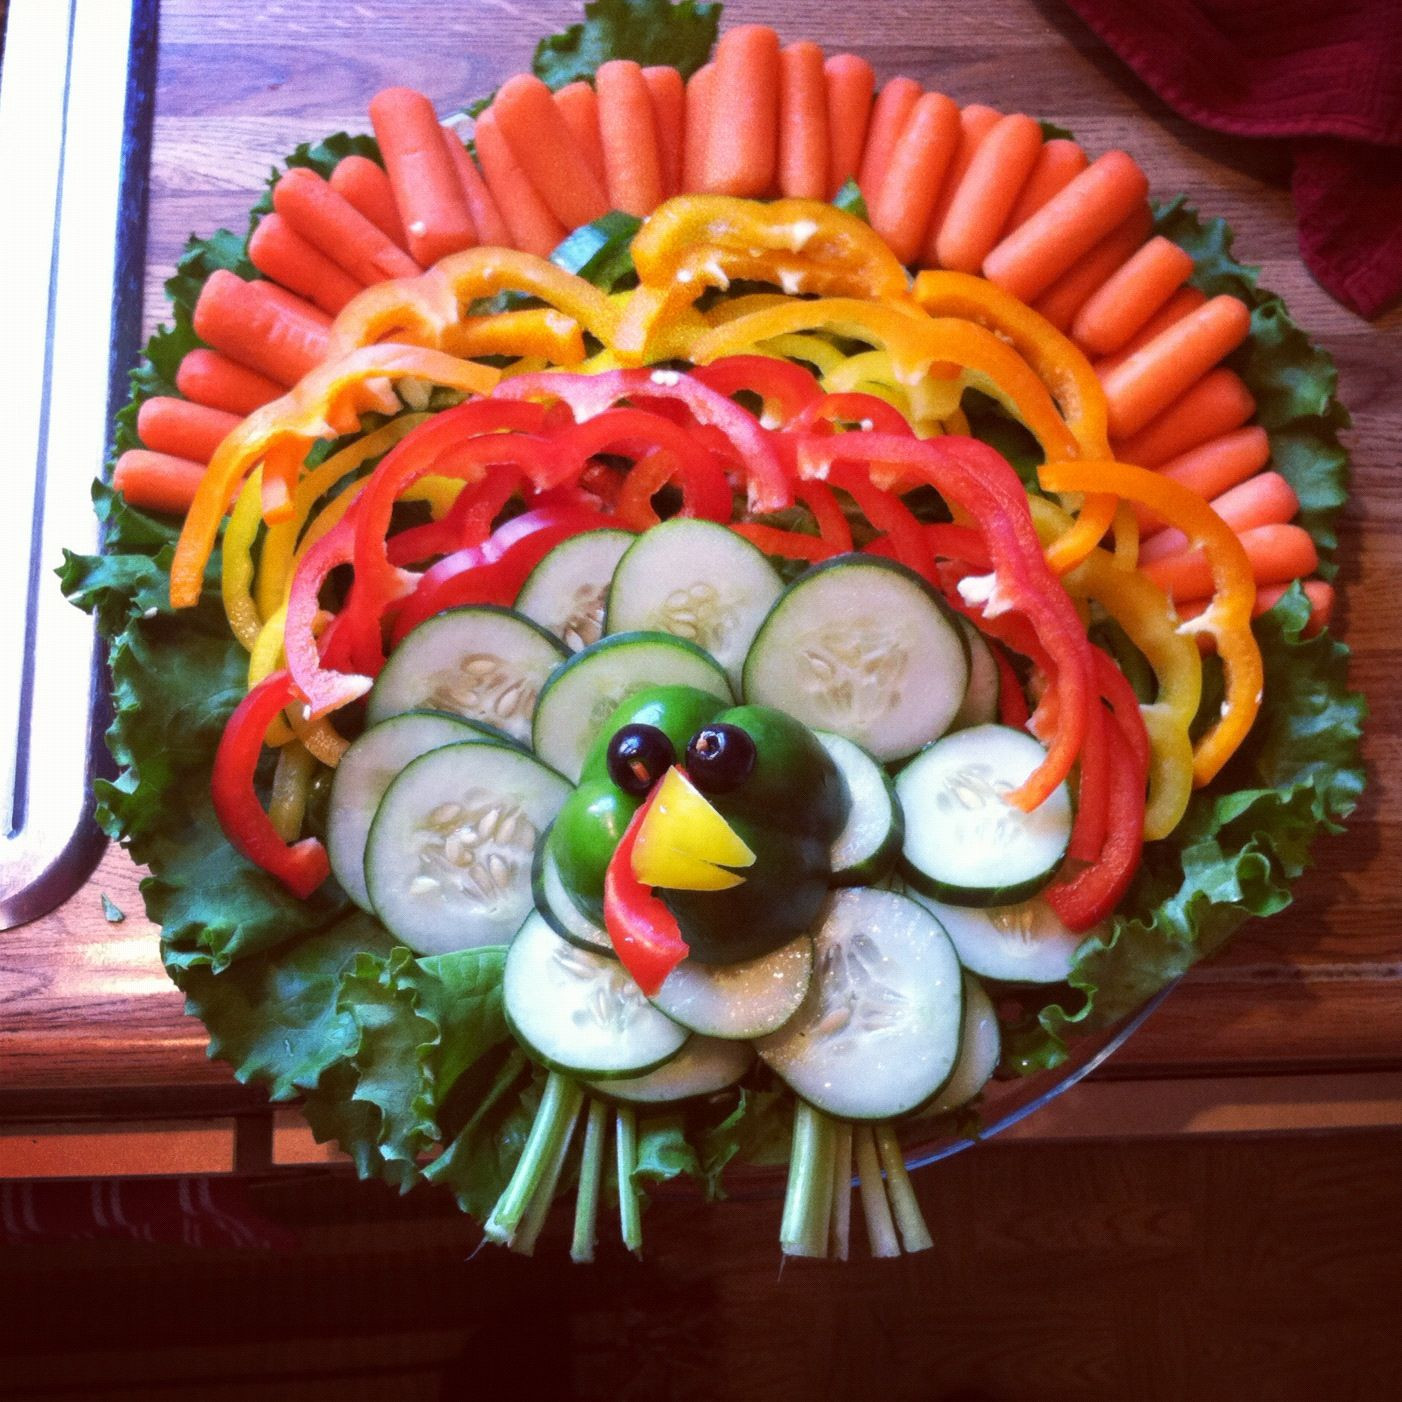 Turkey Veggie Platter For Thanksgiving  1000 ideas about Turkey Veggie Platter on Pinterest